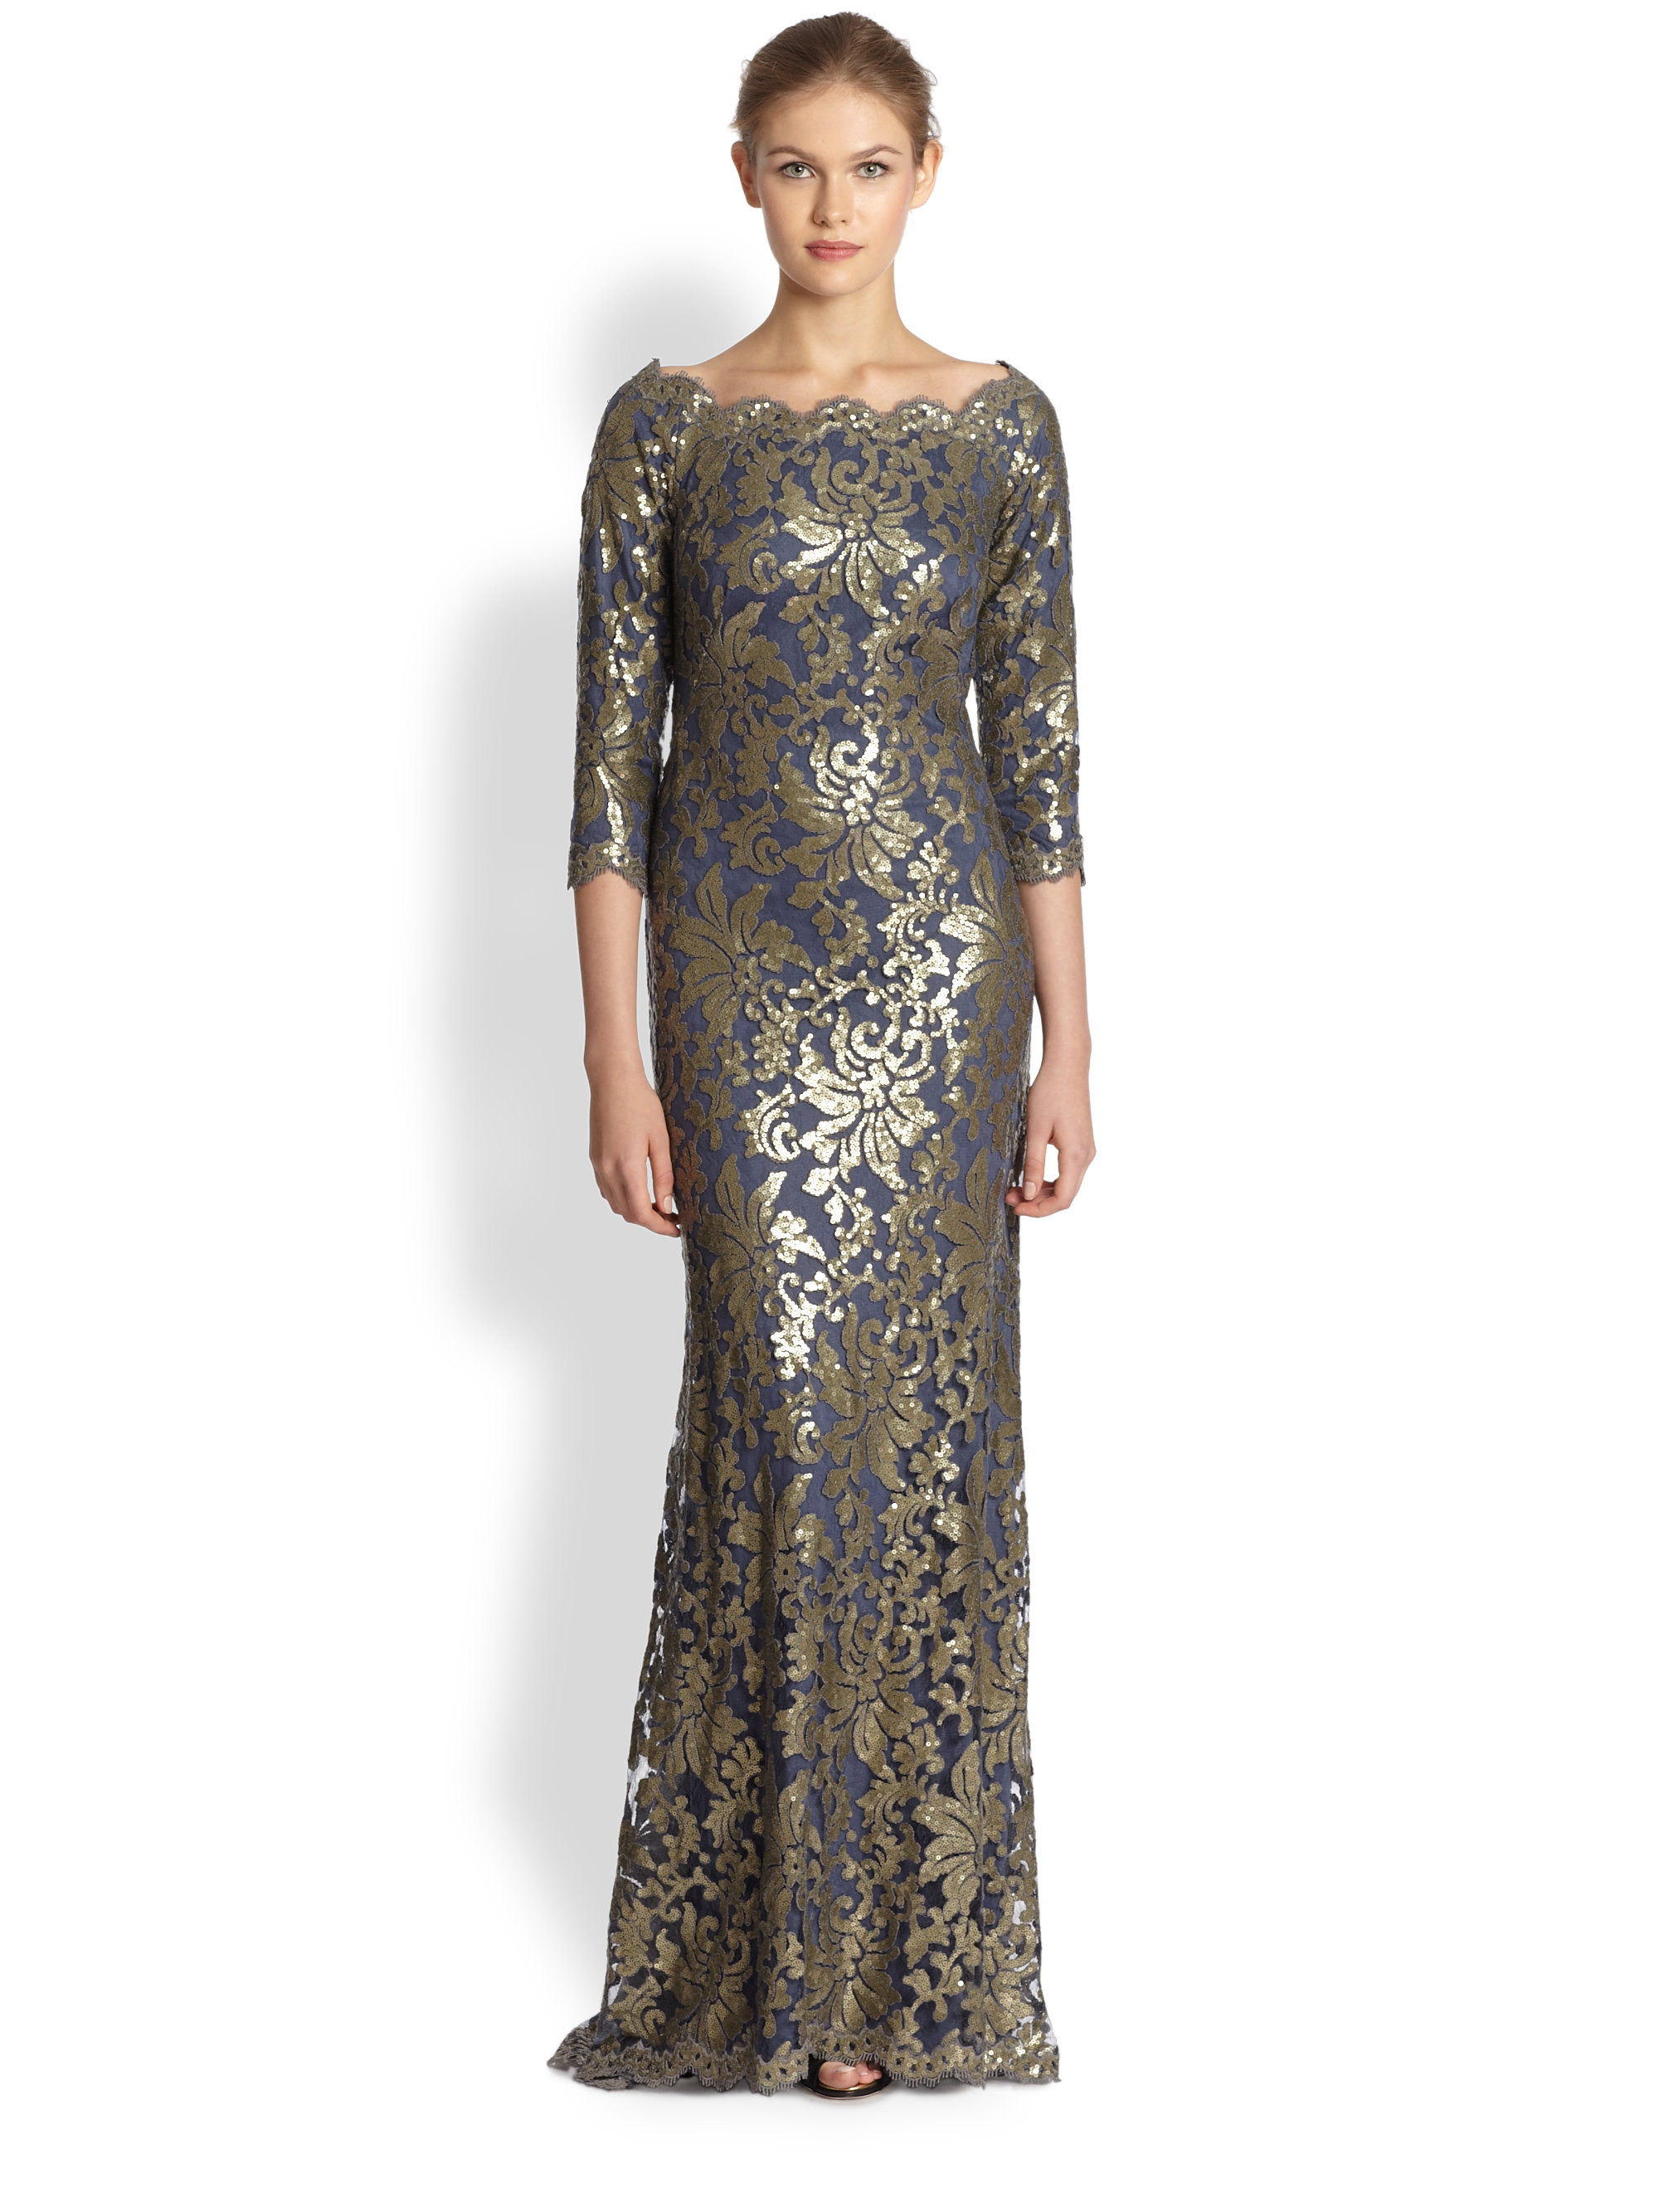 Lyst - Tadashi Shoji Sequined Lace Gown in Blue